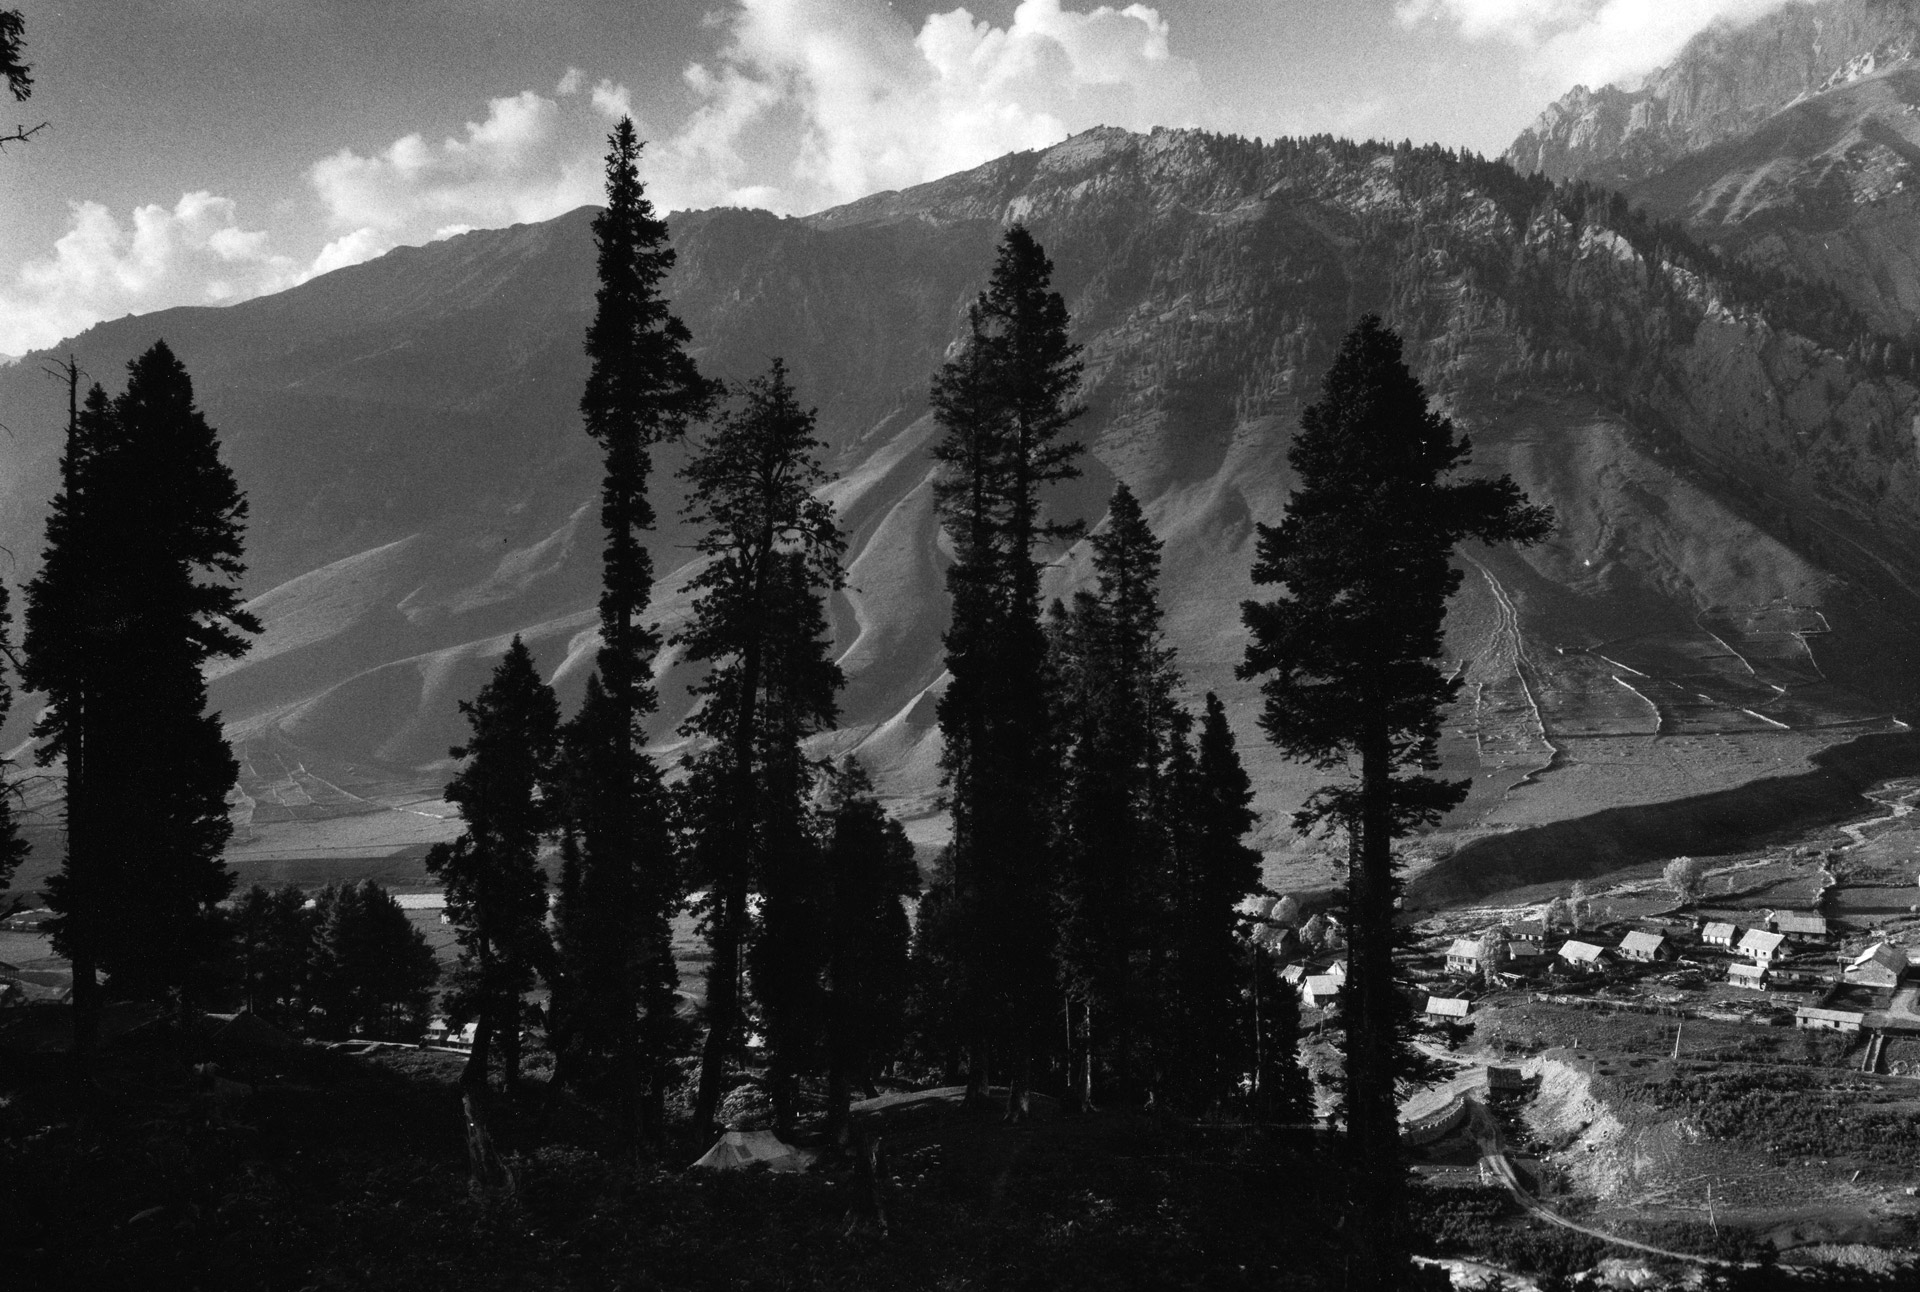 View over the valley in Sona Marg, Kashmir